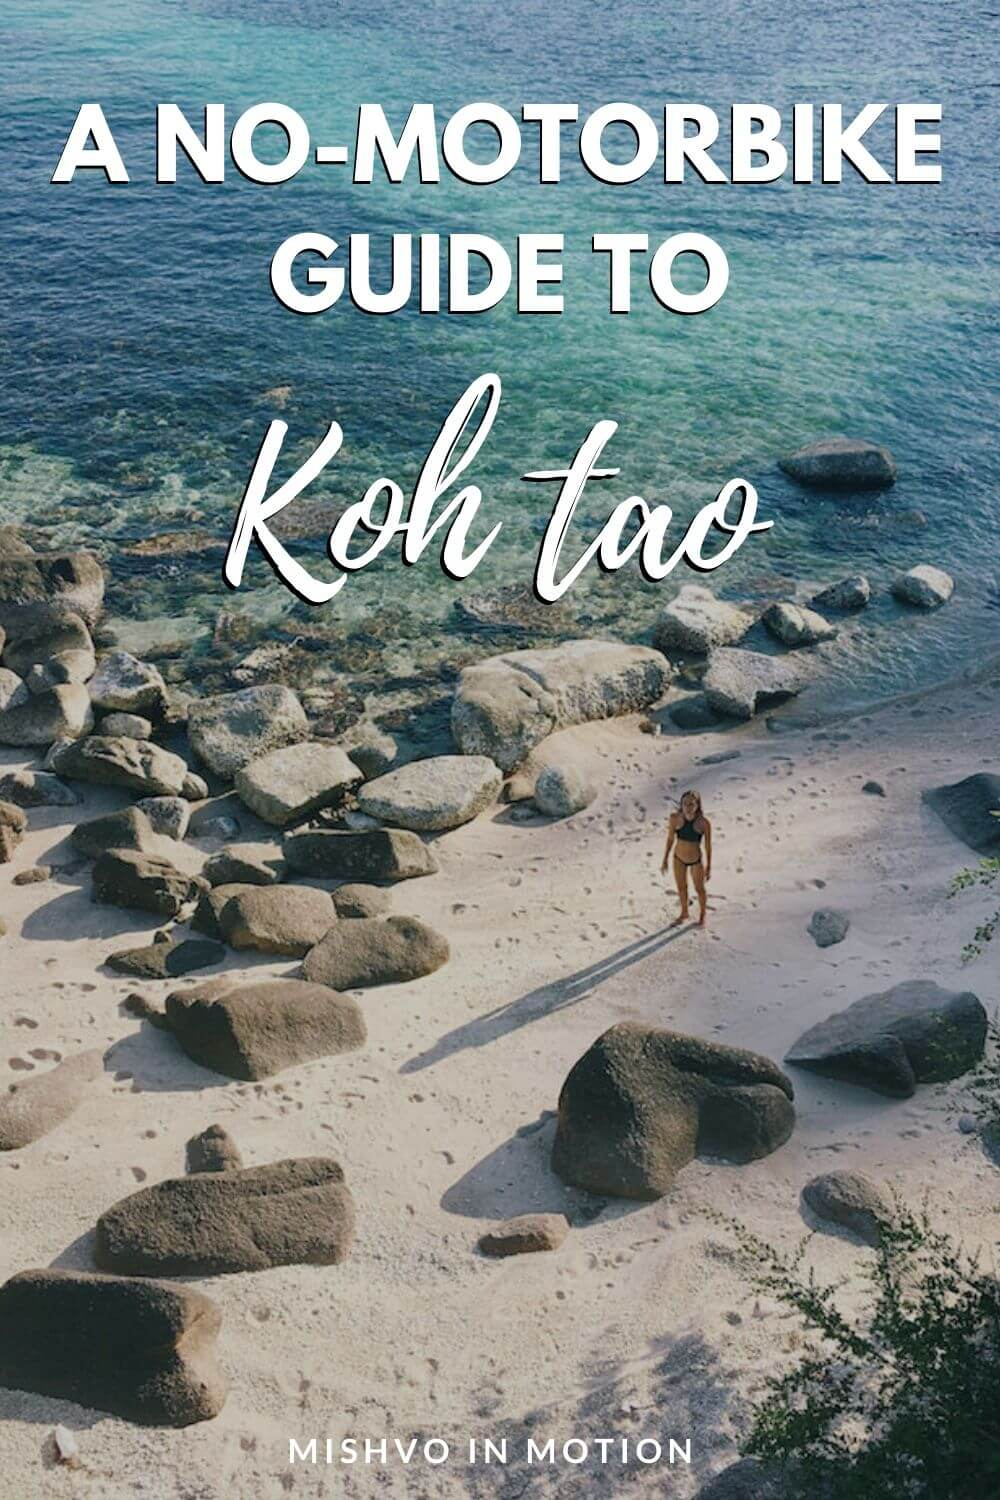 A Walking-only Guide to Koh Tao, Thailand